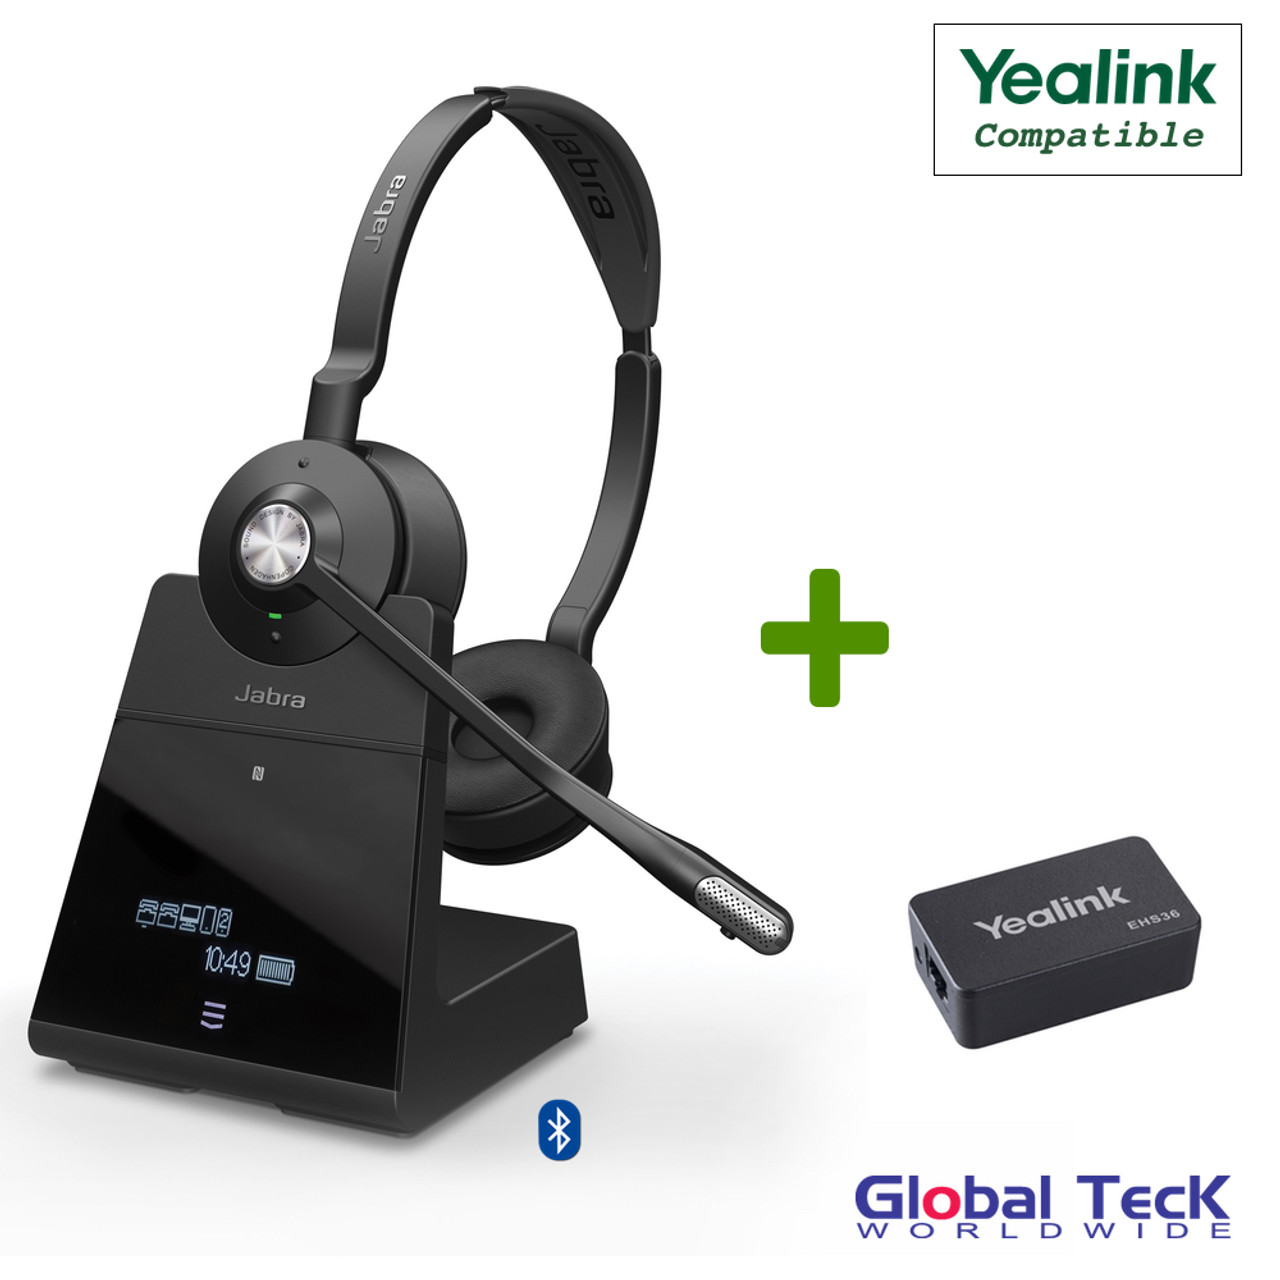 Yealink Compatible Jabra Engage 75 Wireless Headset Bundle With Ehs Adapter Sip Ip T Series